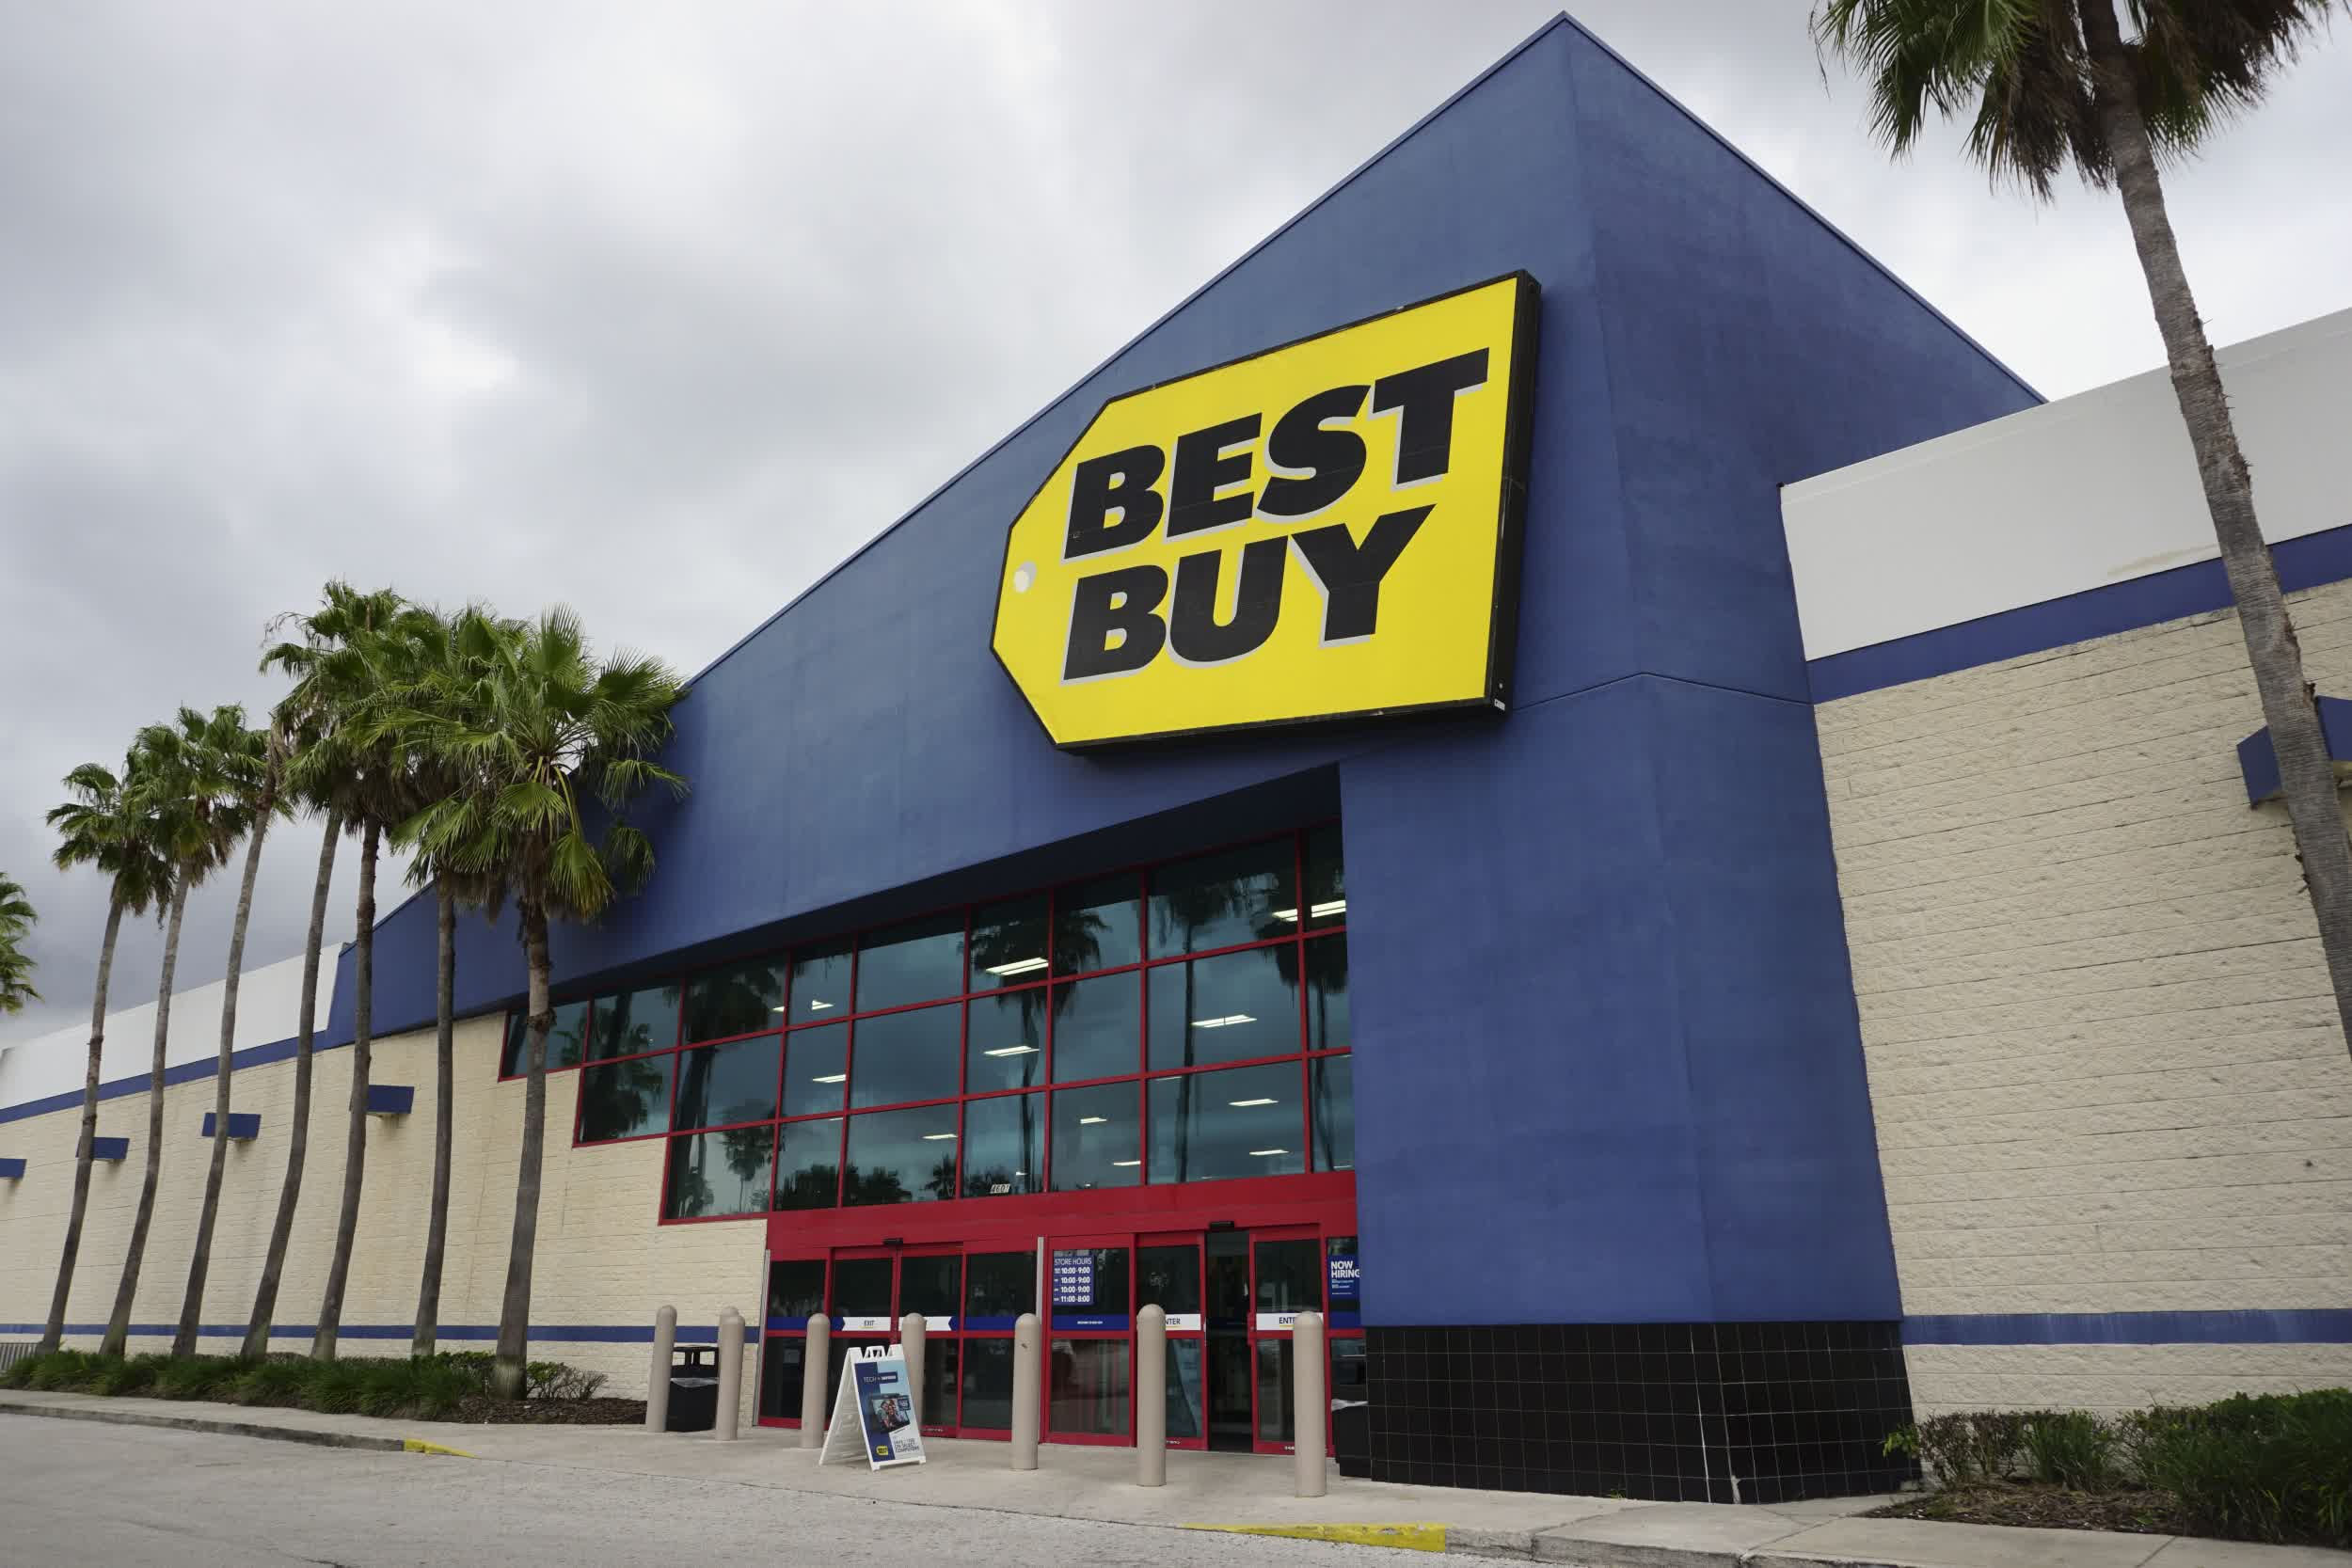 Best Buy: our stores won't have next-gen consoles to purchase throughout the holiday season